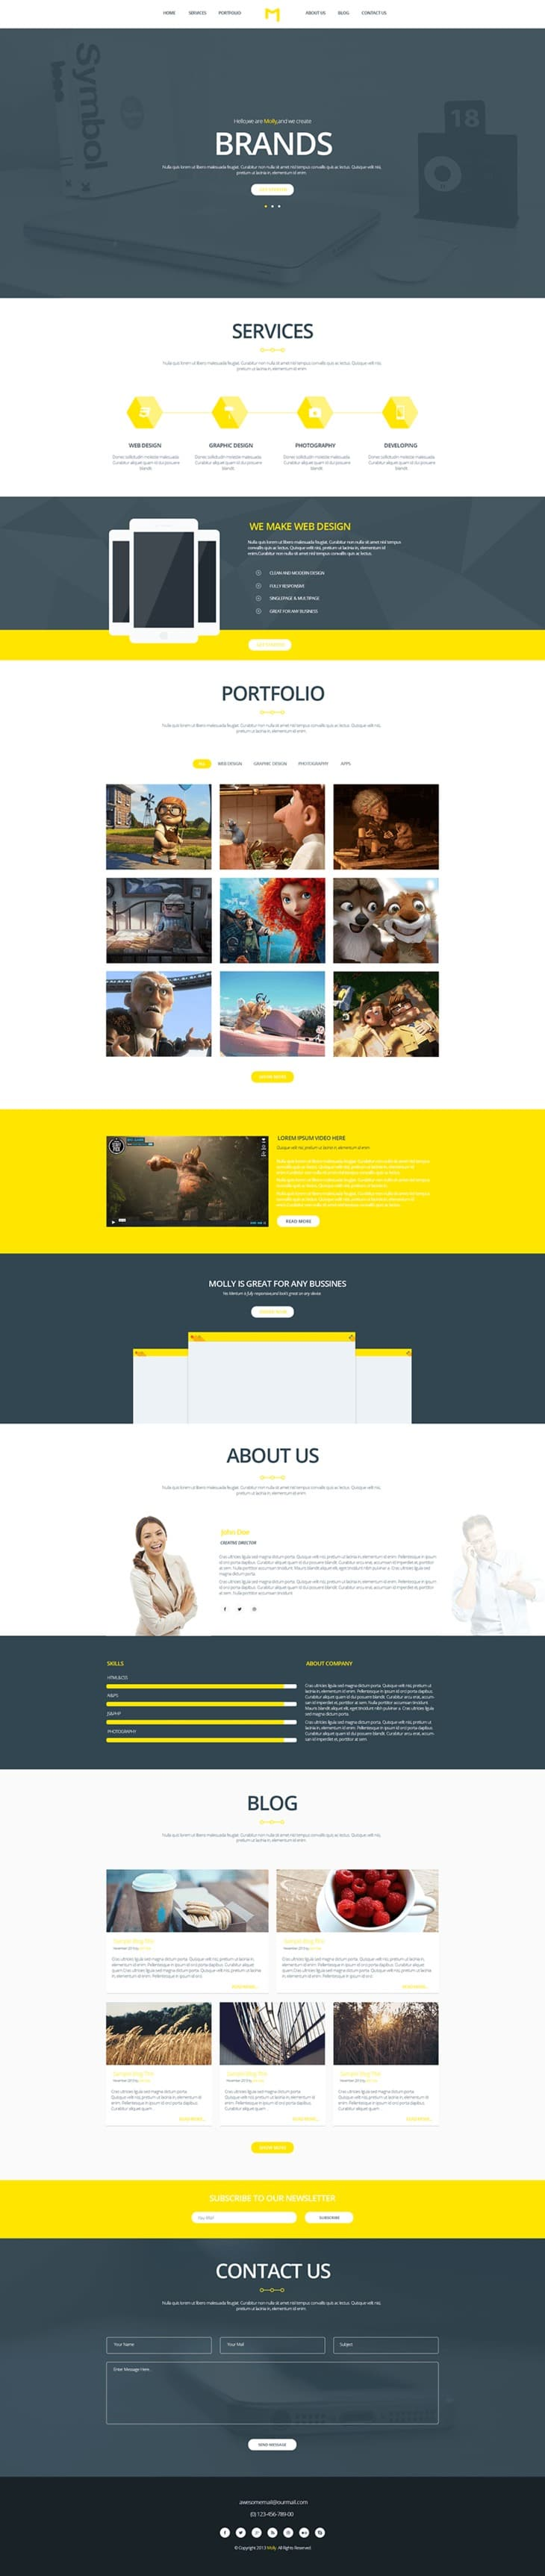 Molly - Free Single Webpage Template PSD